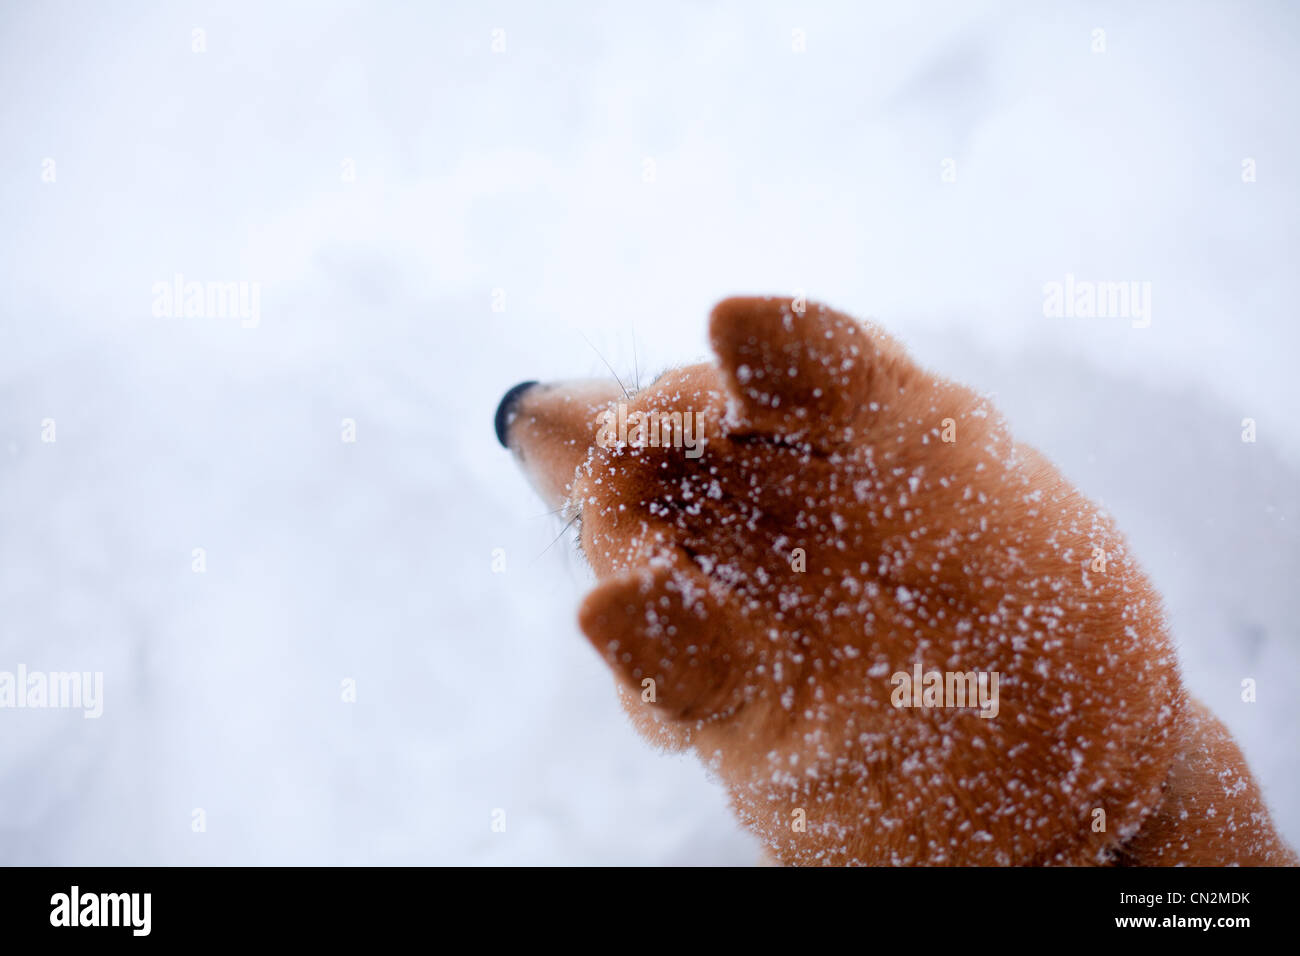 Shiba inu dog in snow, close up of head - Stock Image